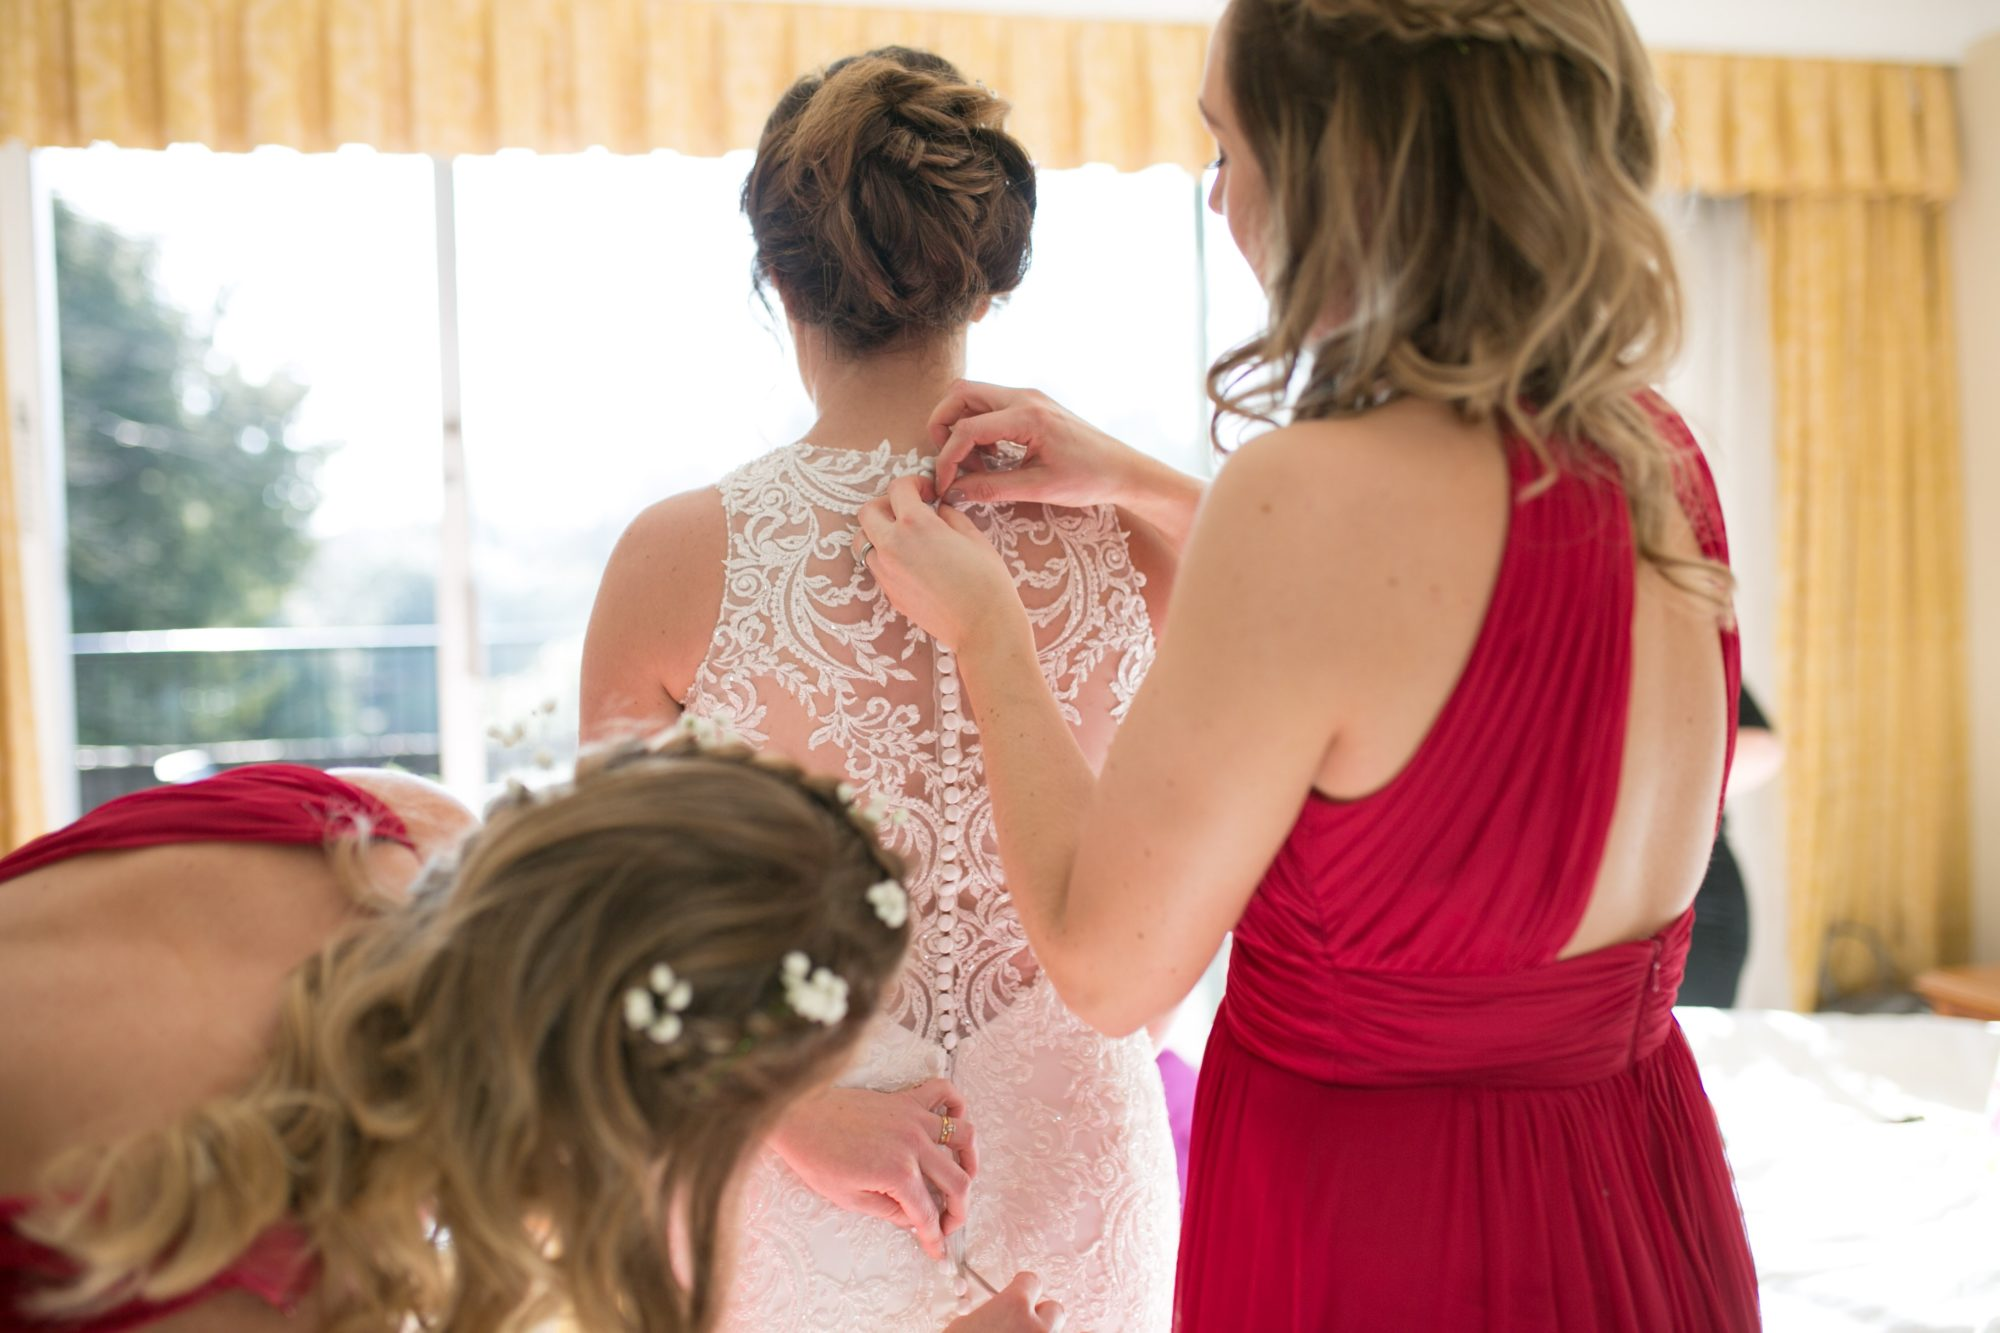 wedding day - maid of honor duties